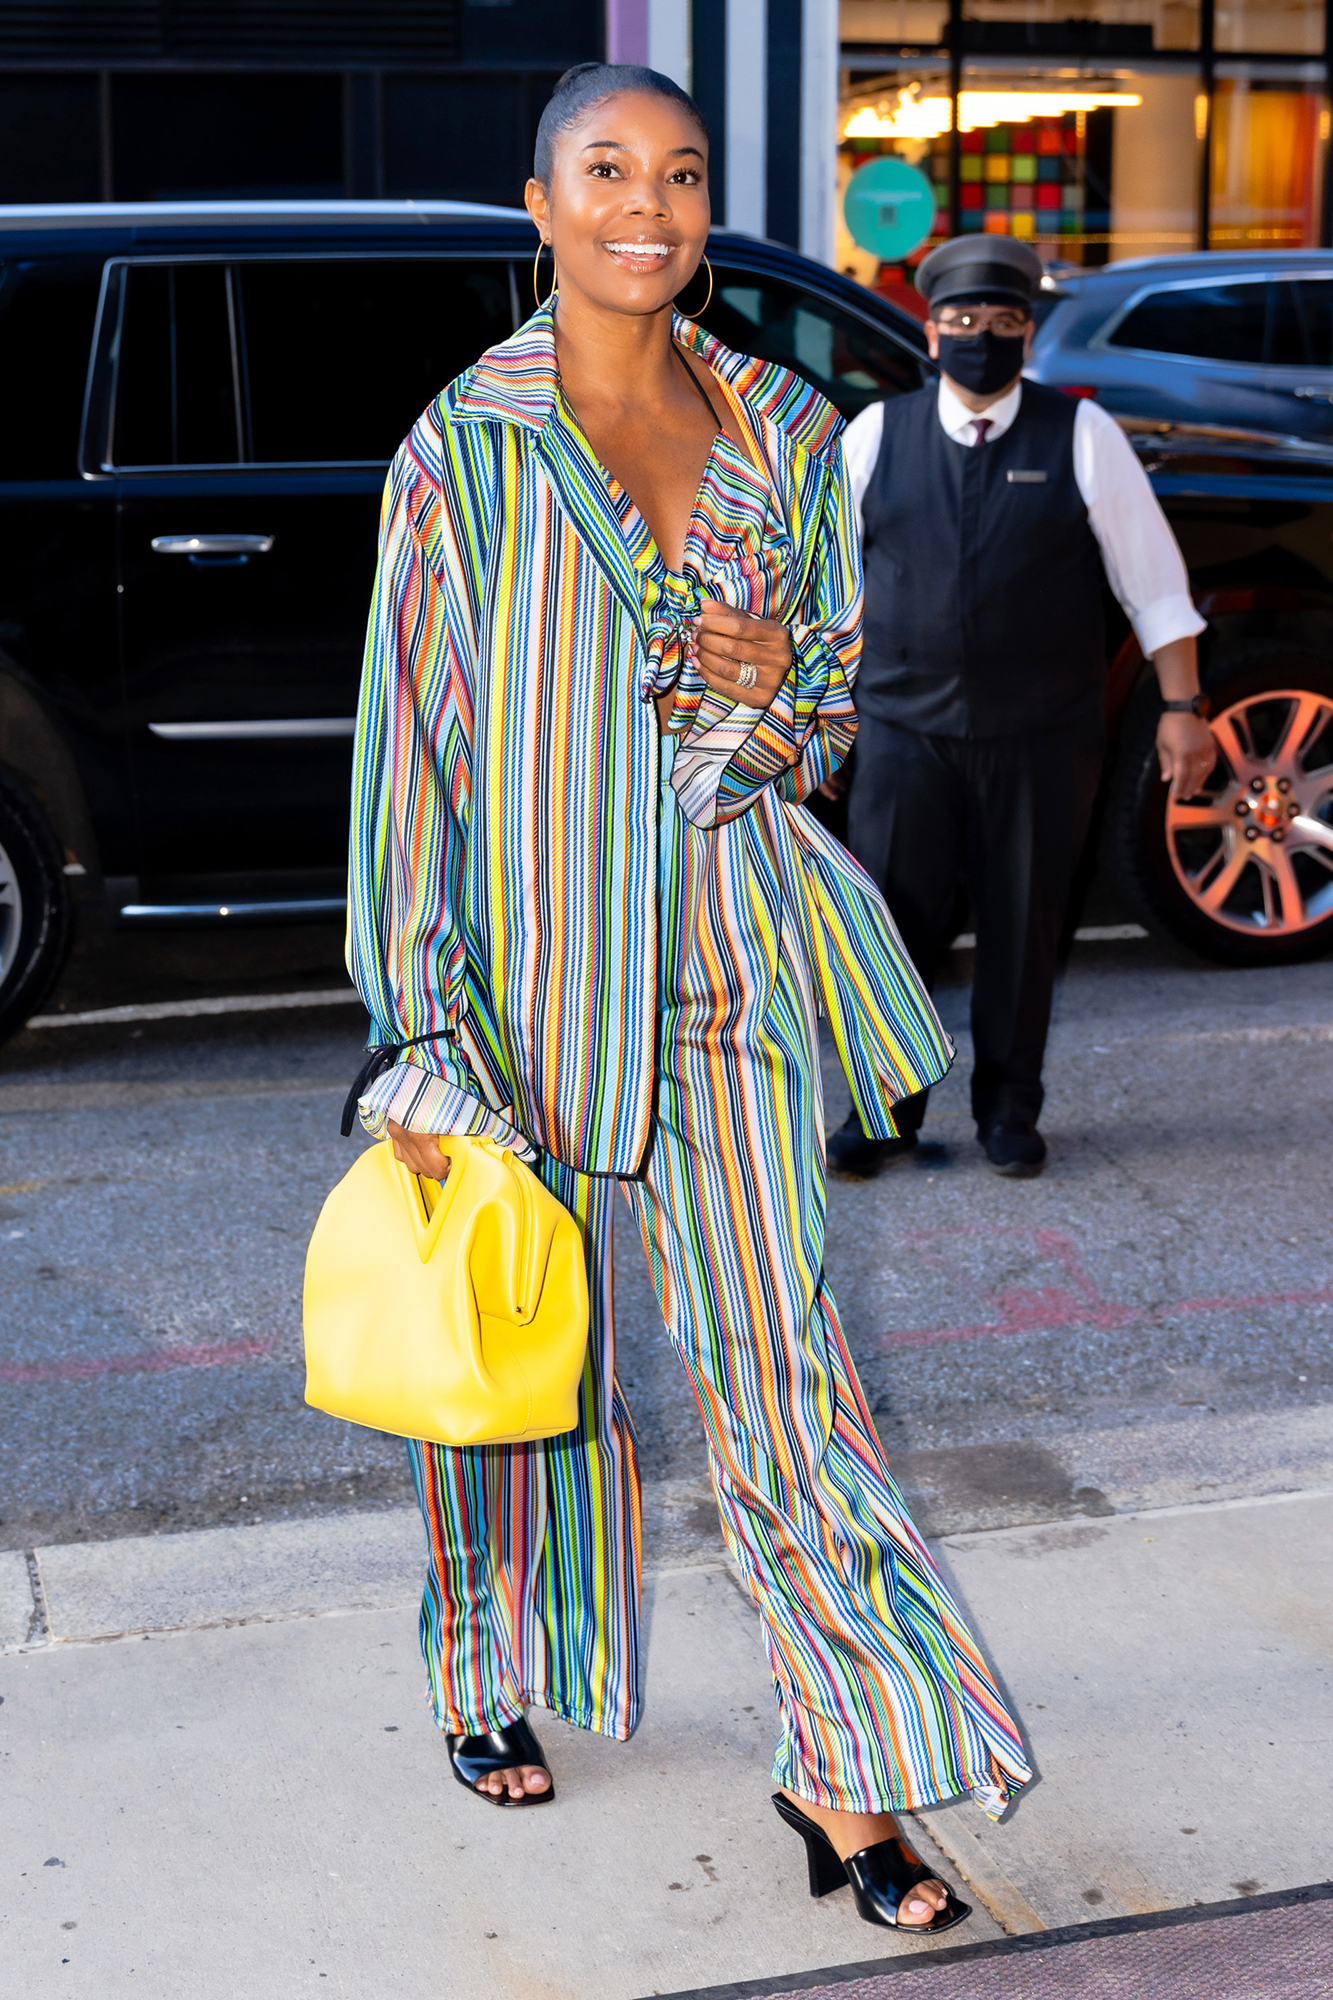 Gabrielle Union is all smiles as she steps out in New York City